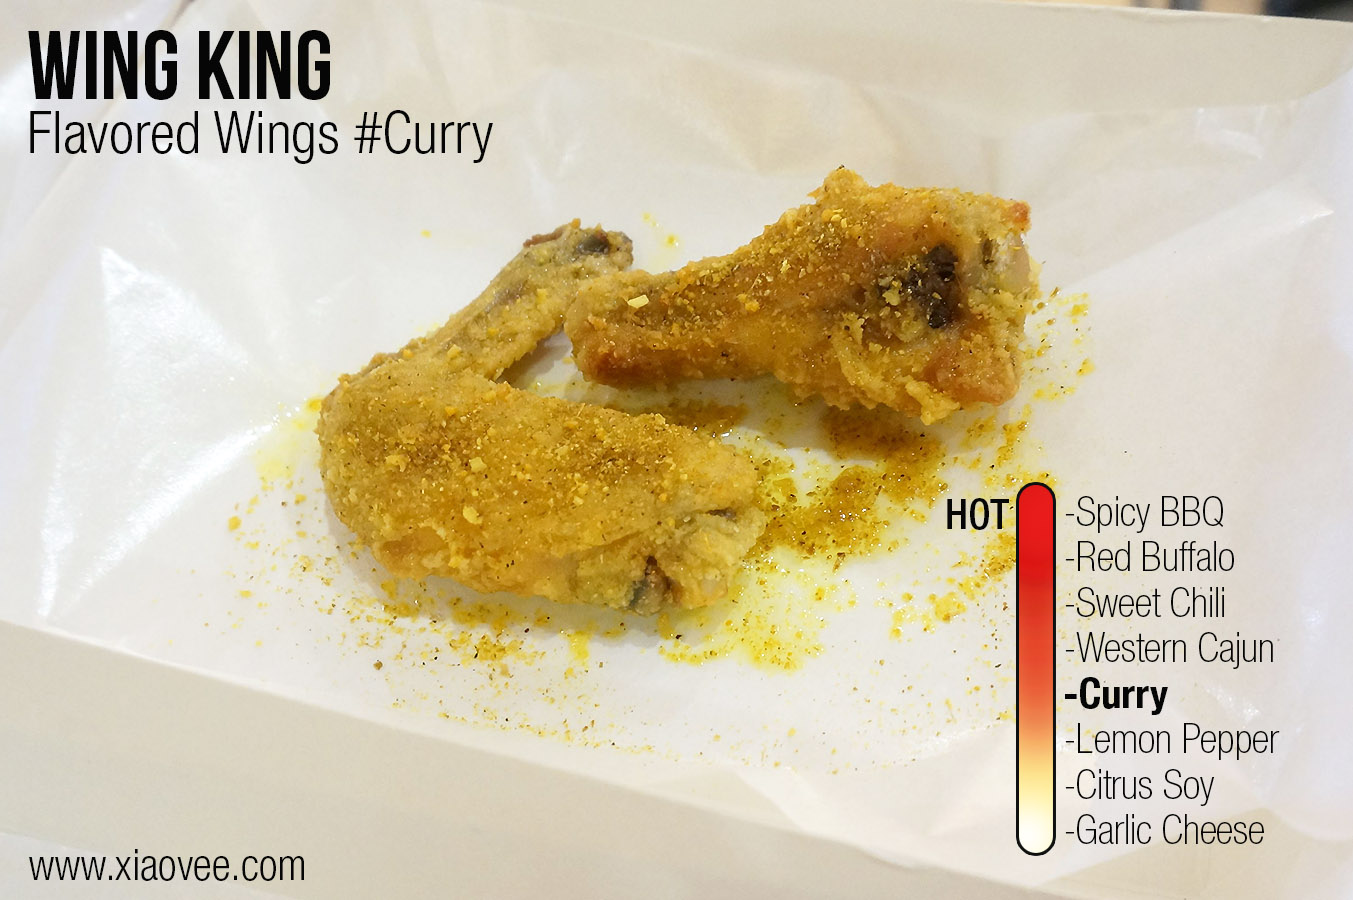 Wing King Surabaya, flavored wing king curry